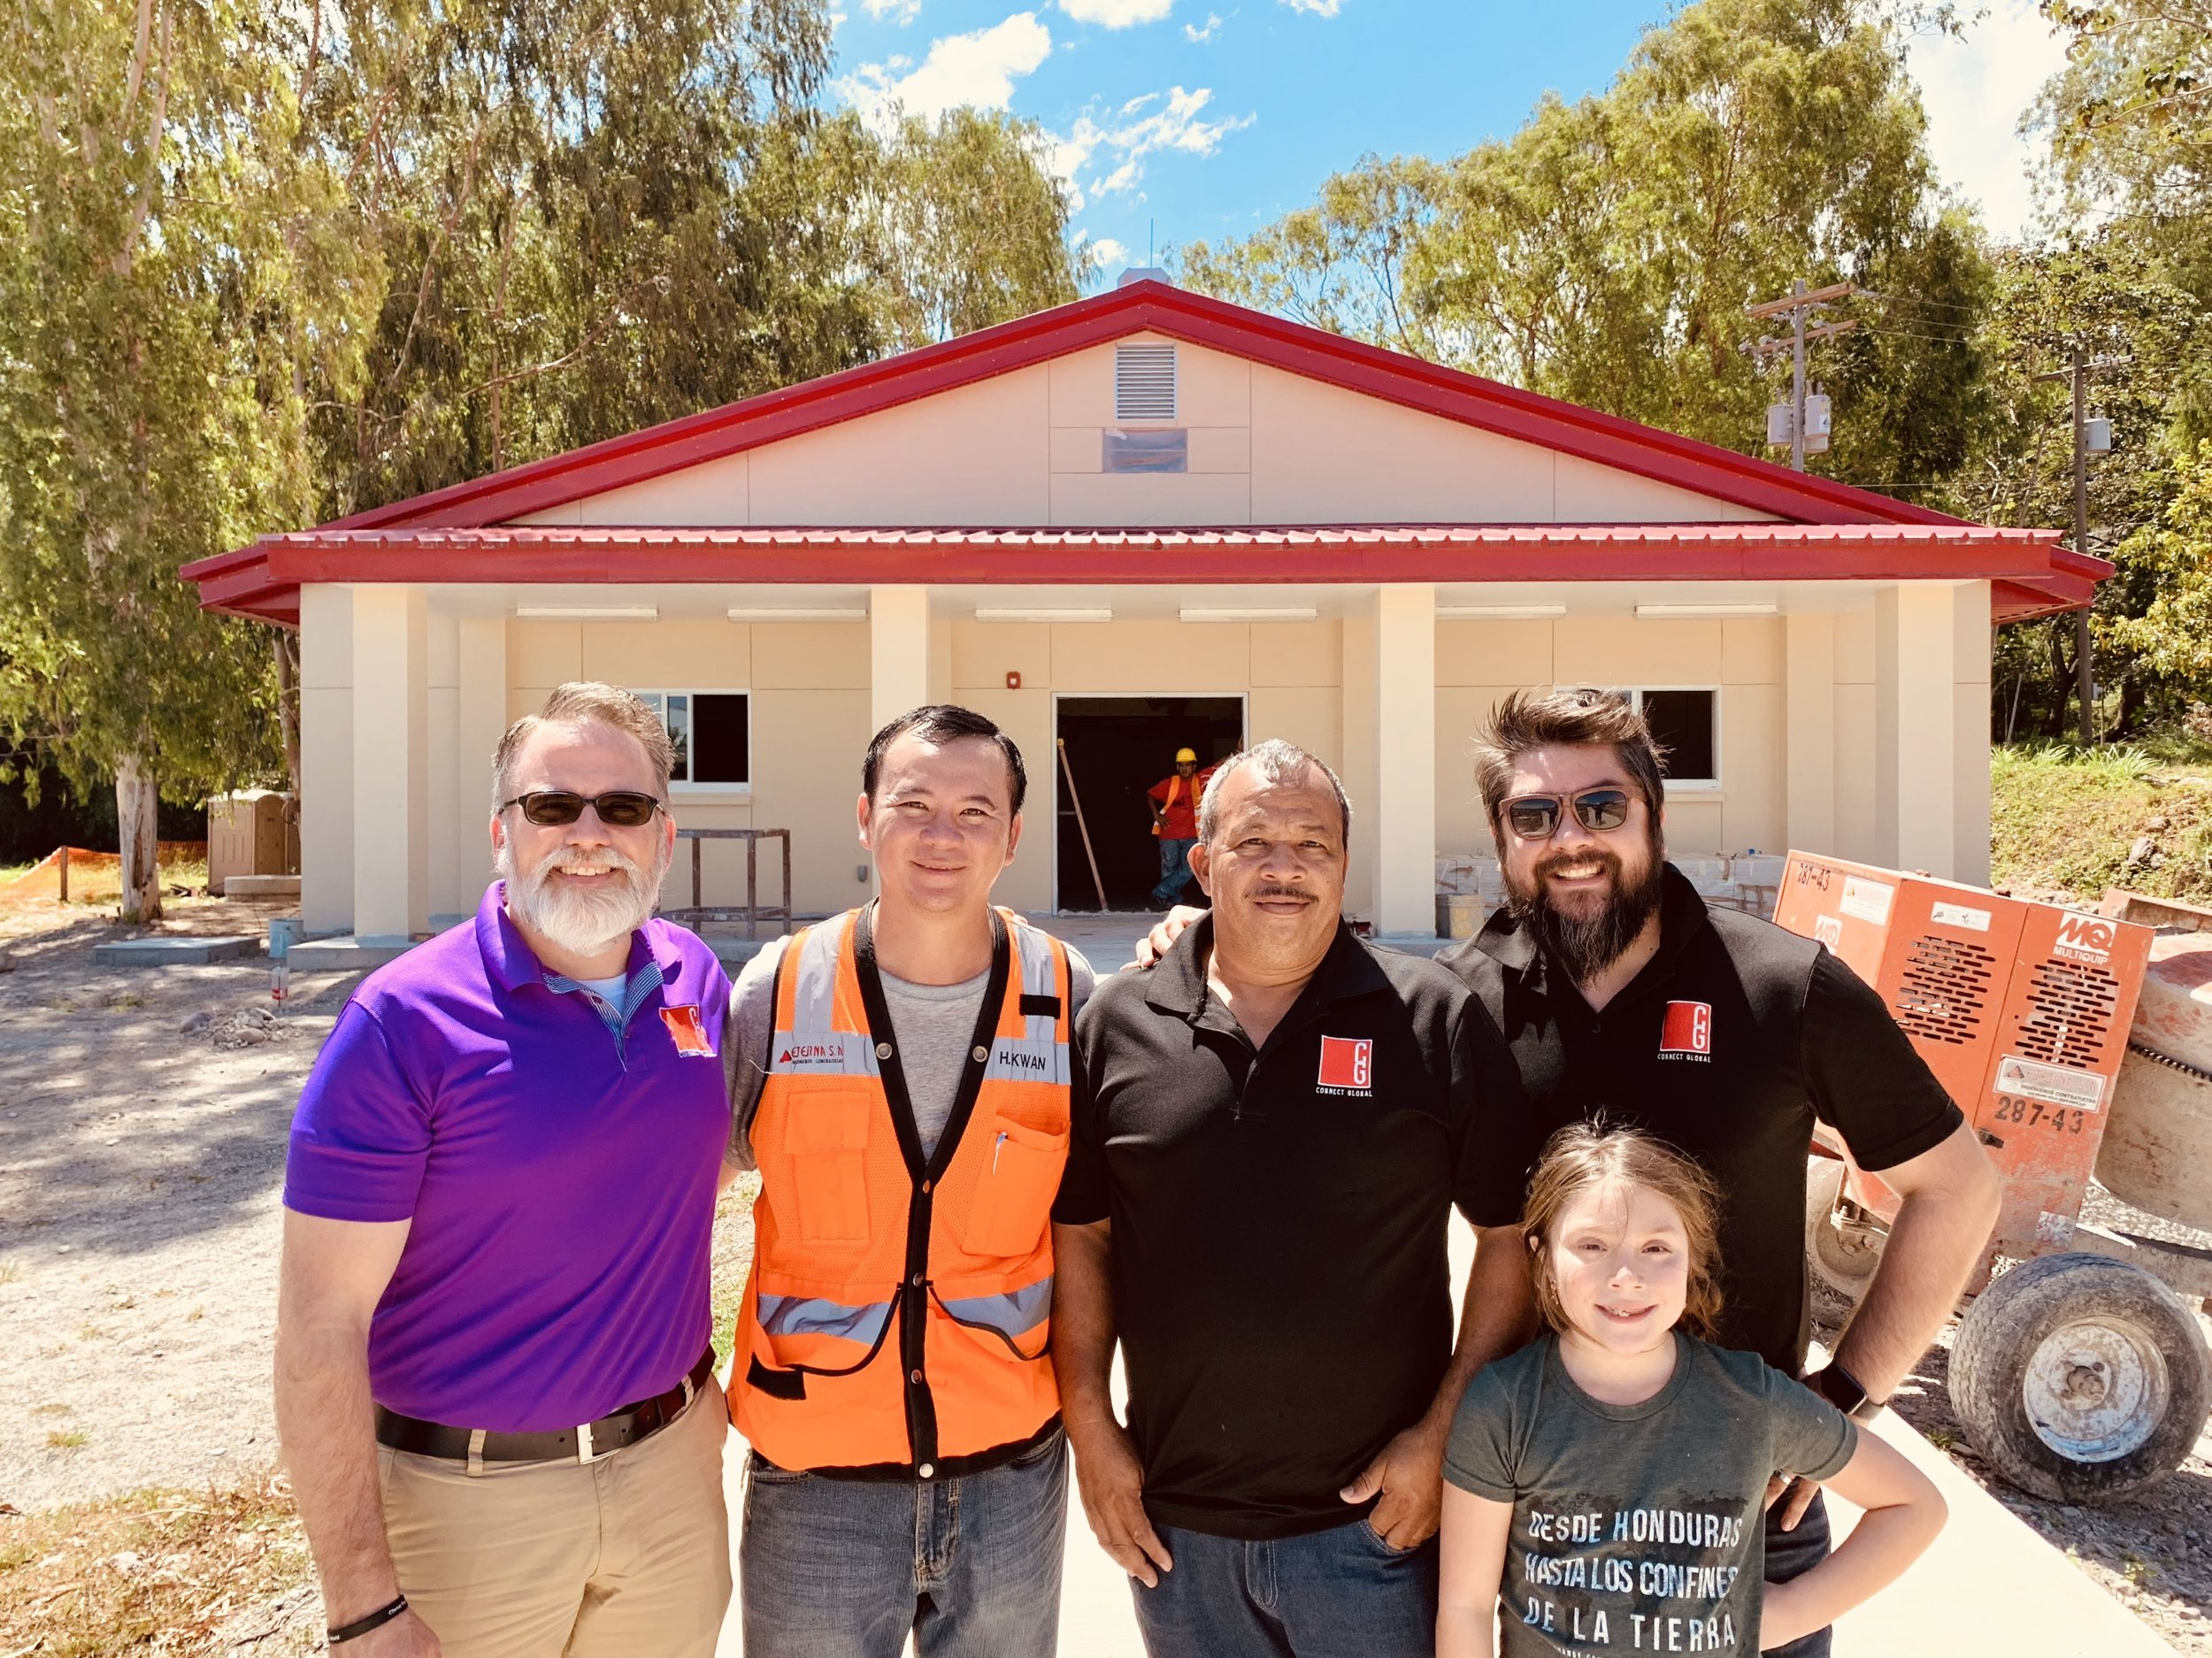 Connect Global Team( L-R Travis Moffitt, Jorge Amador, Javier Mendoza, & Saige Mendoza) with Head Foreman and Contractor for ETERNA, Humberto Kwan Yan, March 2019